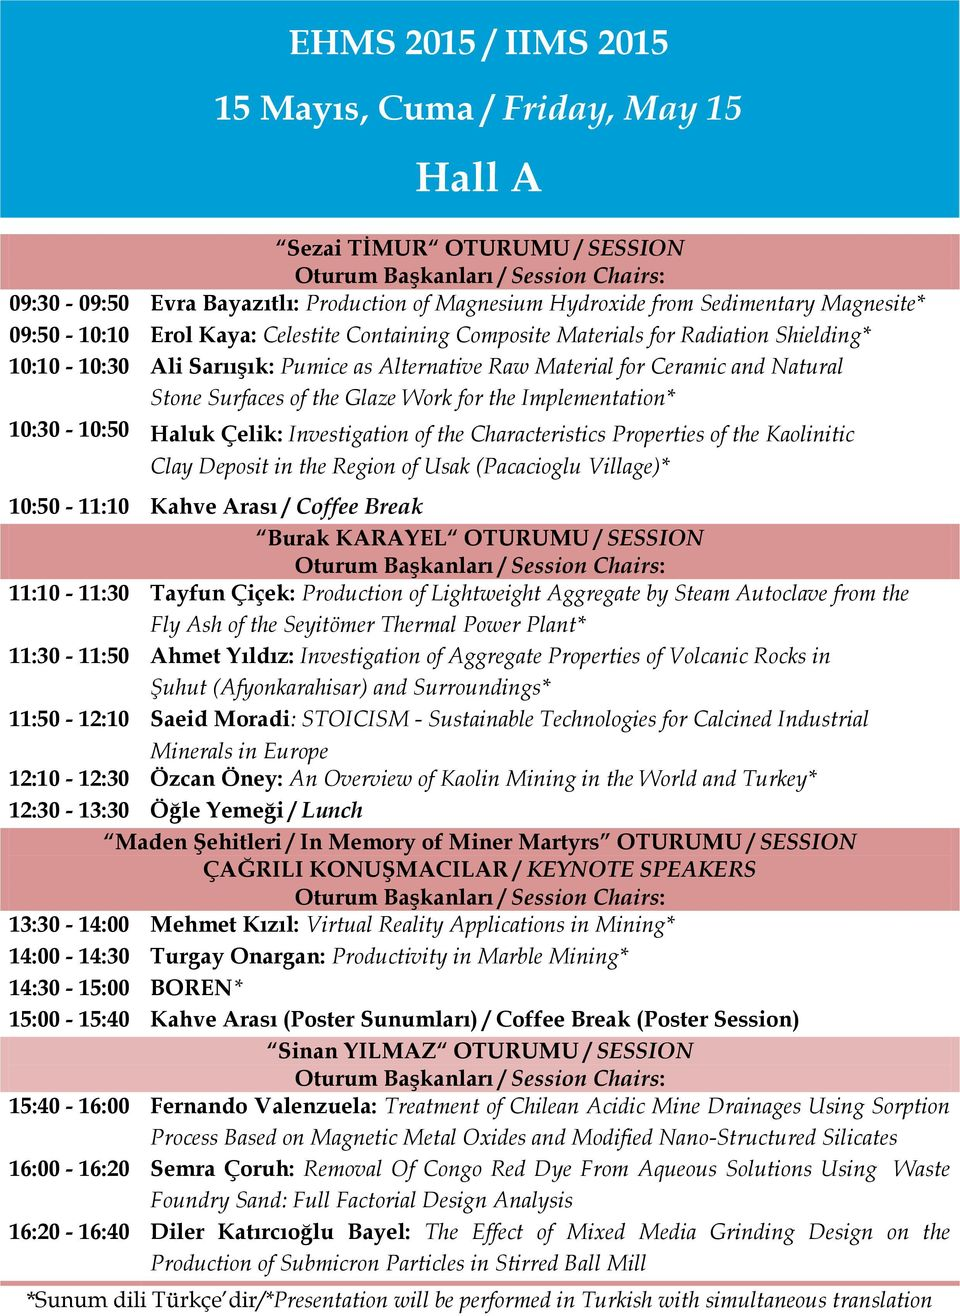 10:30-10:50 Haluk Çelik: Investigation of the Characteristics Properties of the Kaolinitic Clay Deposit in the Region of Usak (Pacacioglu Village)* 10:50-11:10 Kahve Arası / Coffee Break Burak